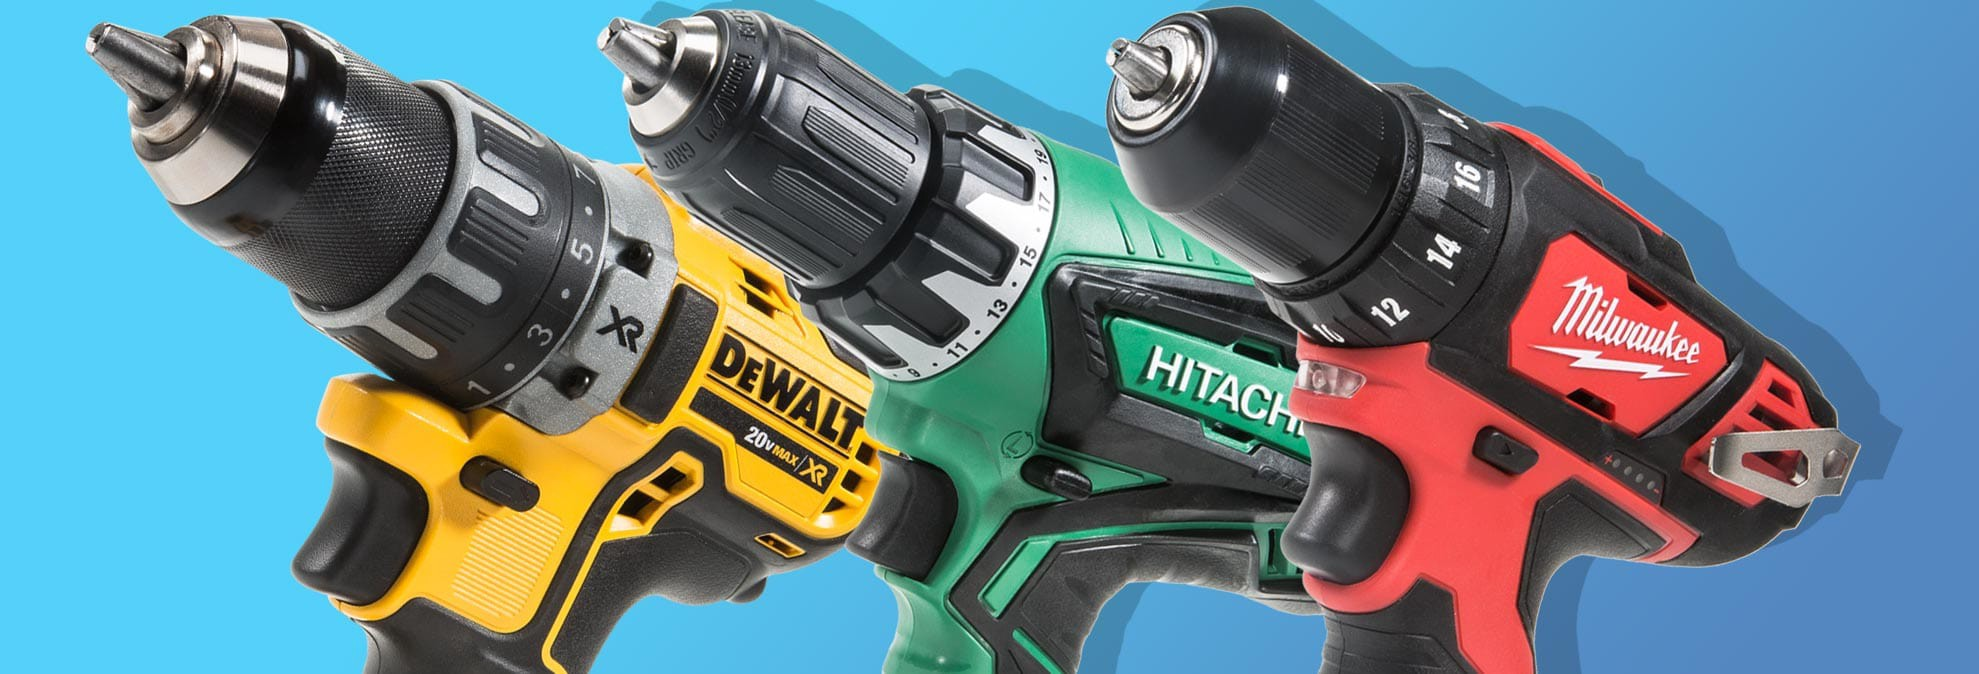 Impact Wrench Ers Guide Everything You Need To Know About